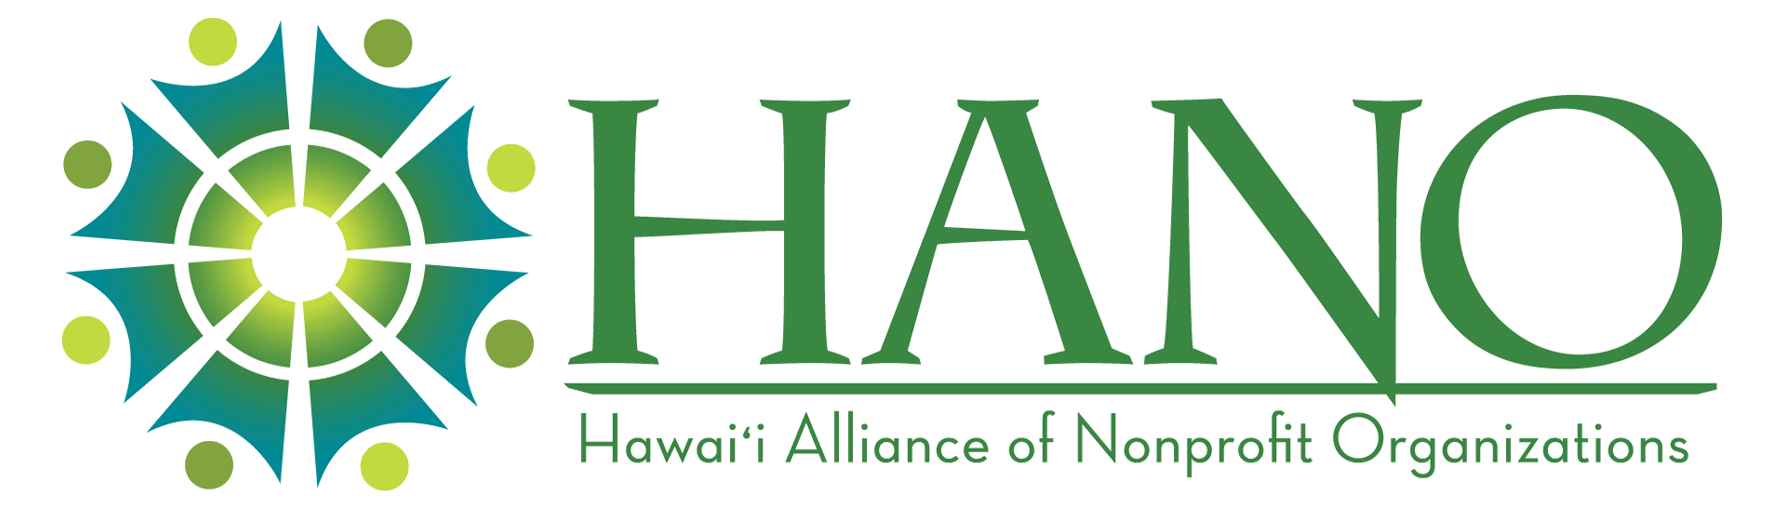 Link to Hawaii Alliance of Nonprofit Organizations